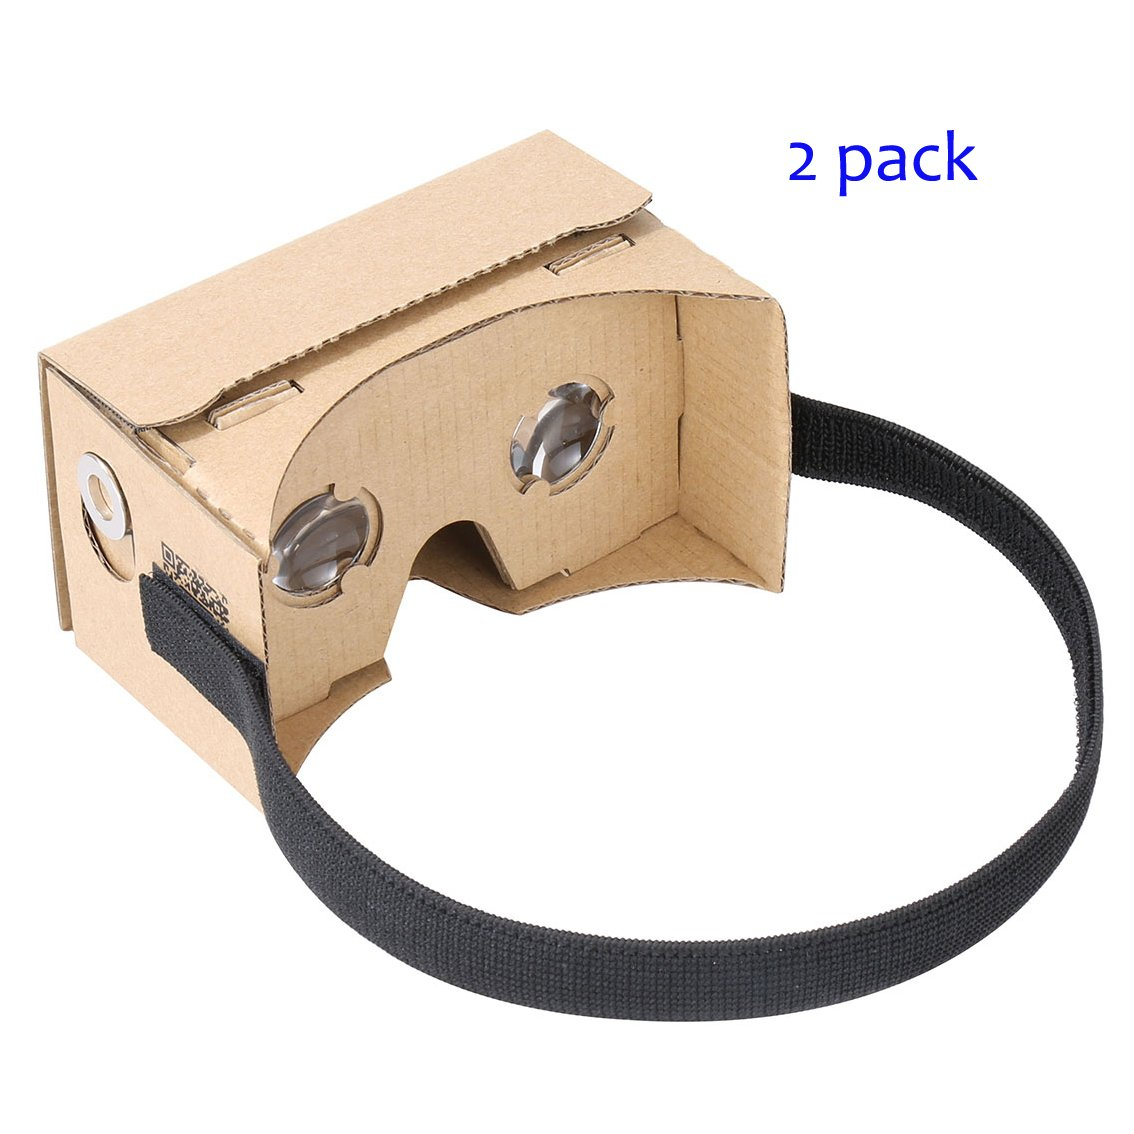 Google Cardboard by IHUAQI 2 Pack with Headstrap Unibody Design with Instructions Pre-Assembled Fit for 3.5 inch to 6 inch Compatible with Android and iPhone